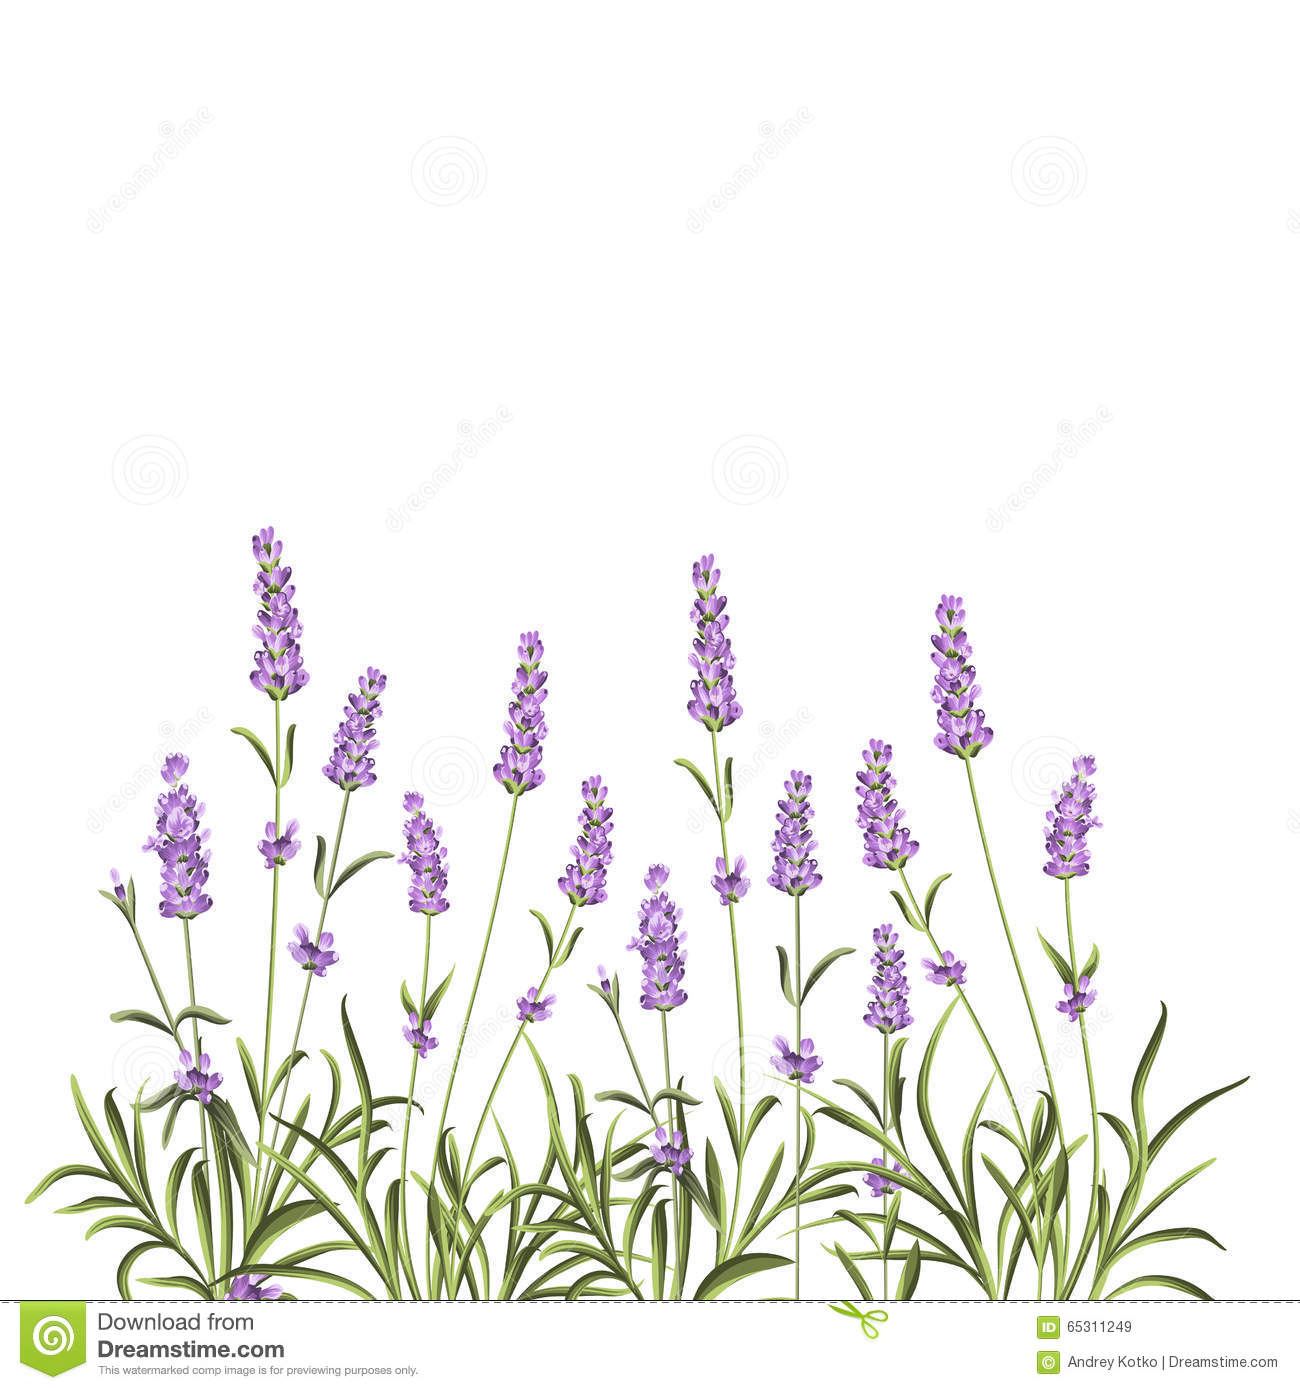 Wreath Of Lavender Flowers Stock Vector - Image: 65311249